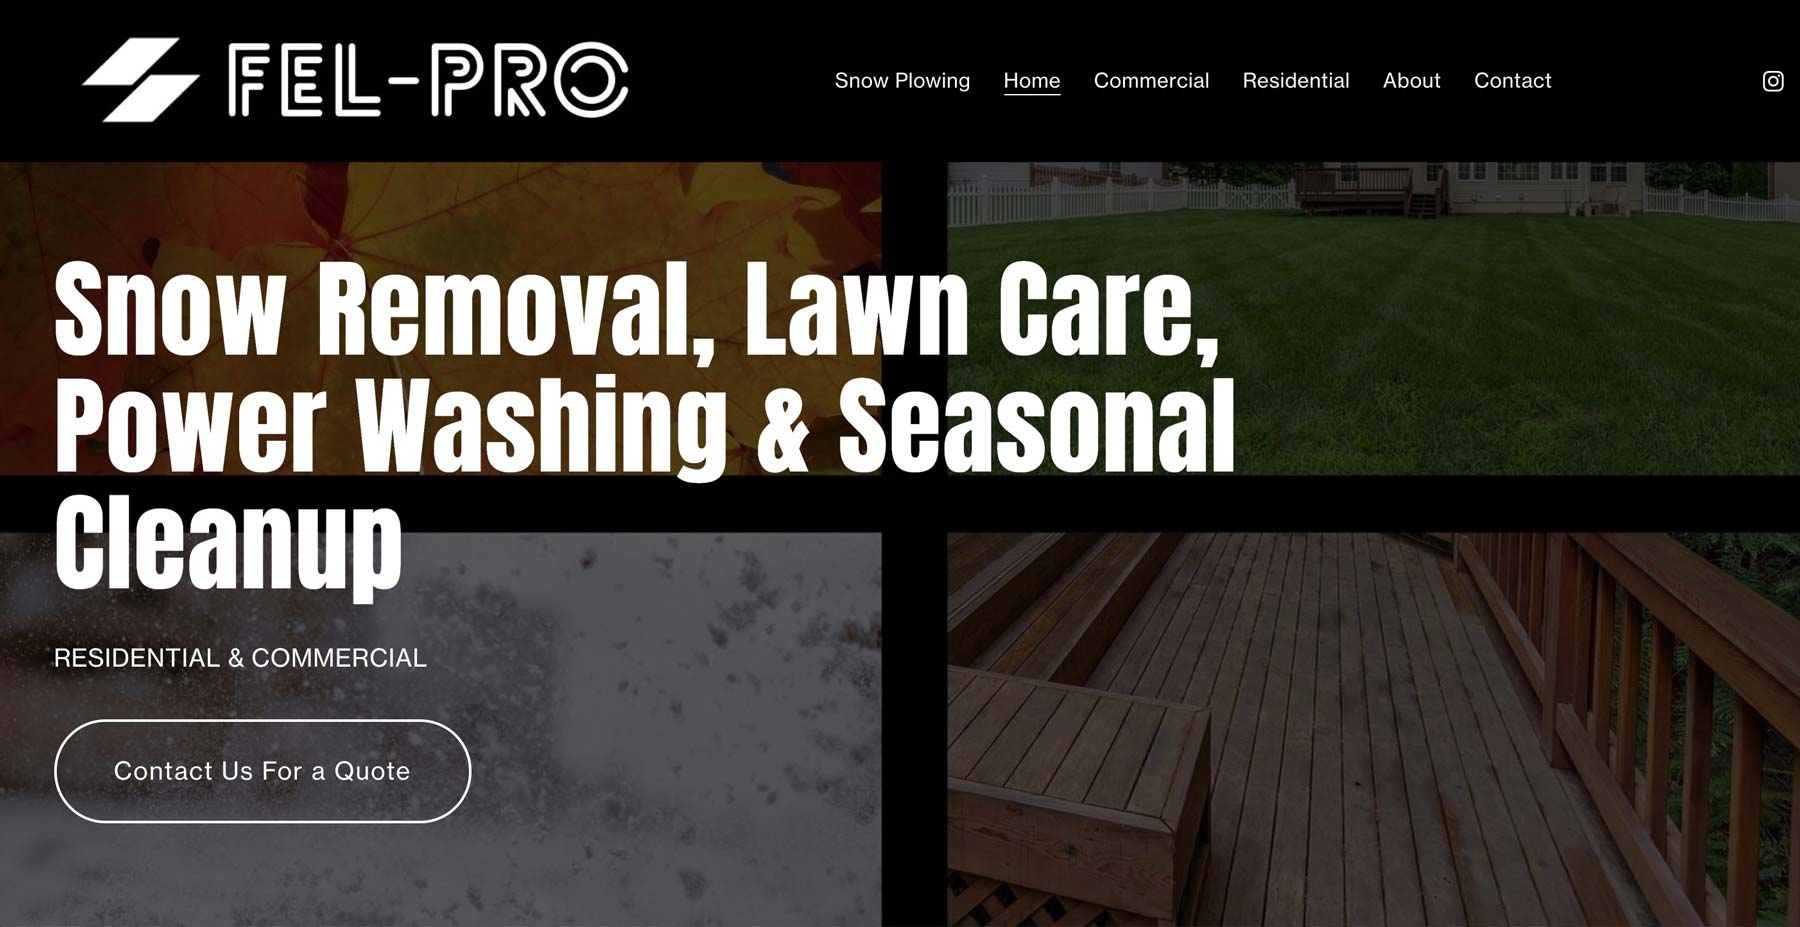 web design for property maintenance company